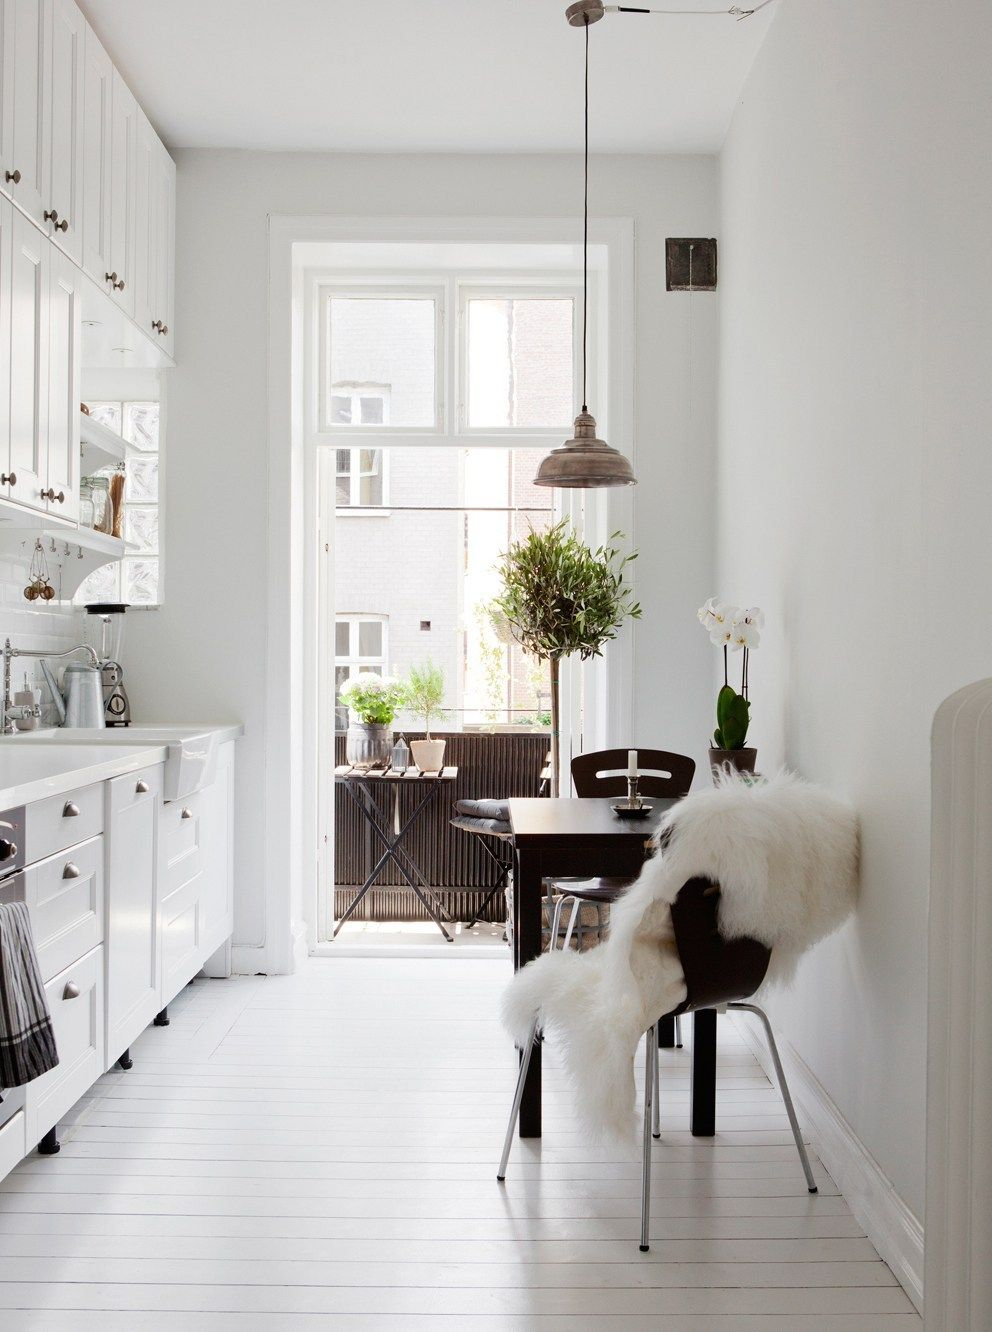 ultra white kitchen scandinavian kitchen design galley kitchen design kitchen designs layout on kitchen remodel not white id=11723